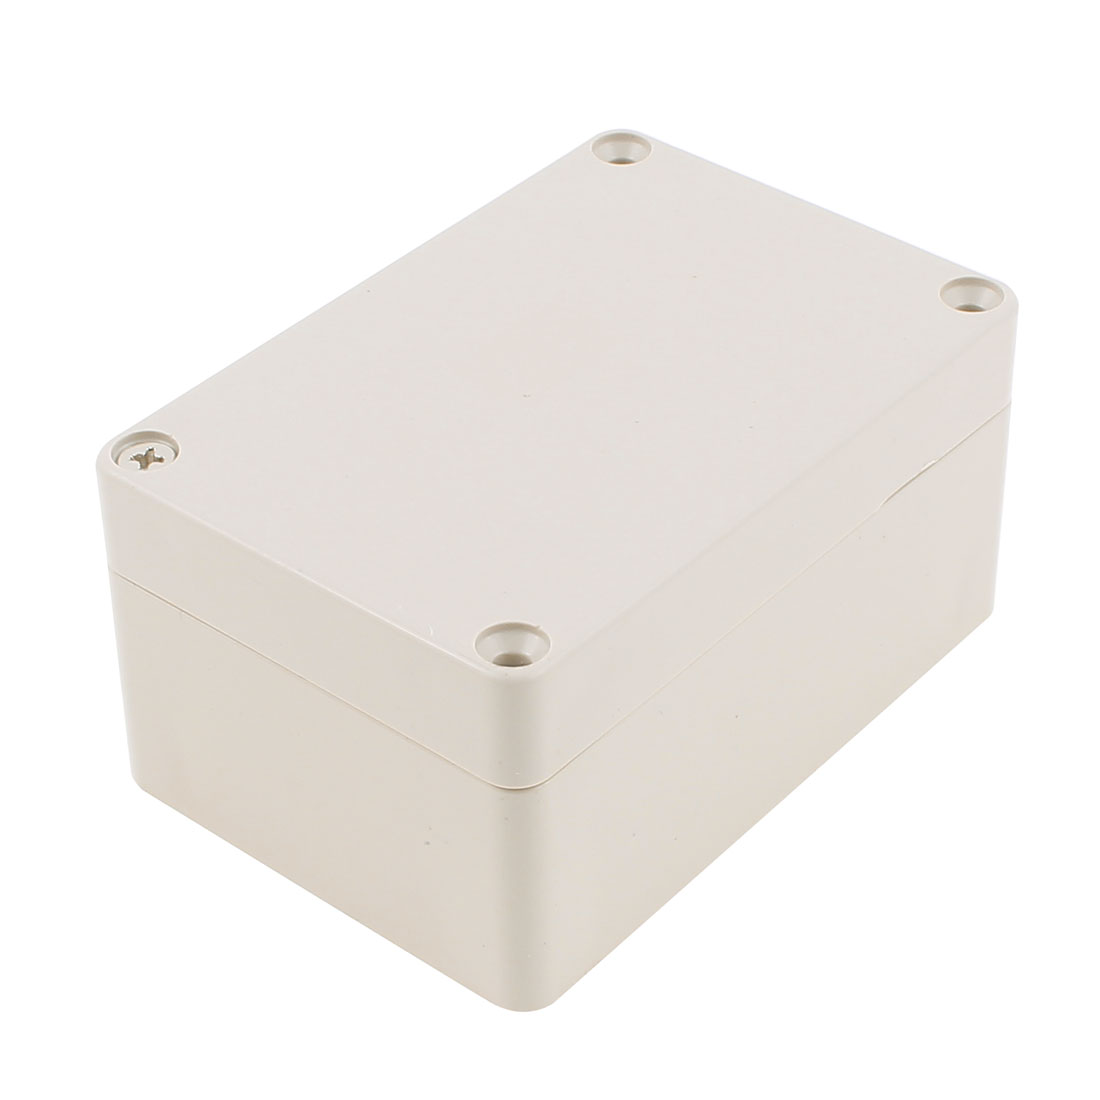 100 x 68 x 50mm Dustproof IP65 Junction Box Terminal Connecting Box Enclosure